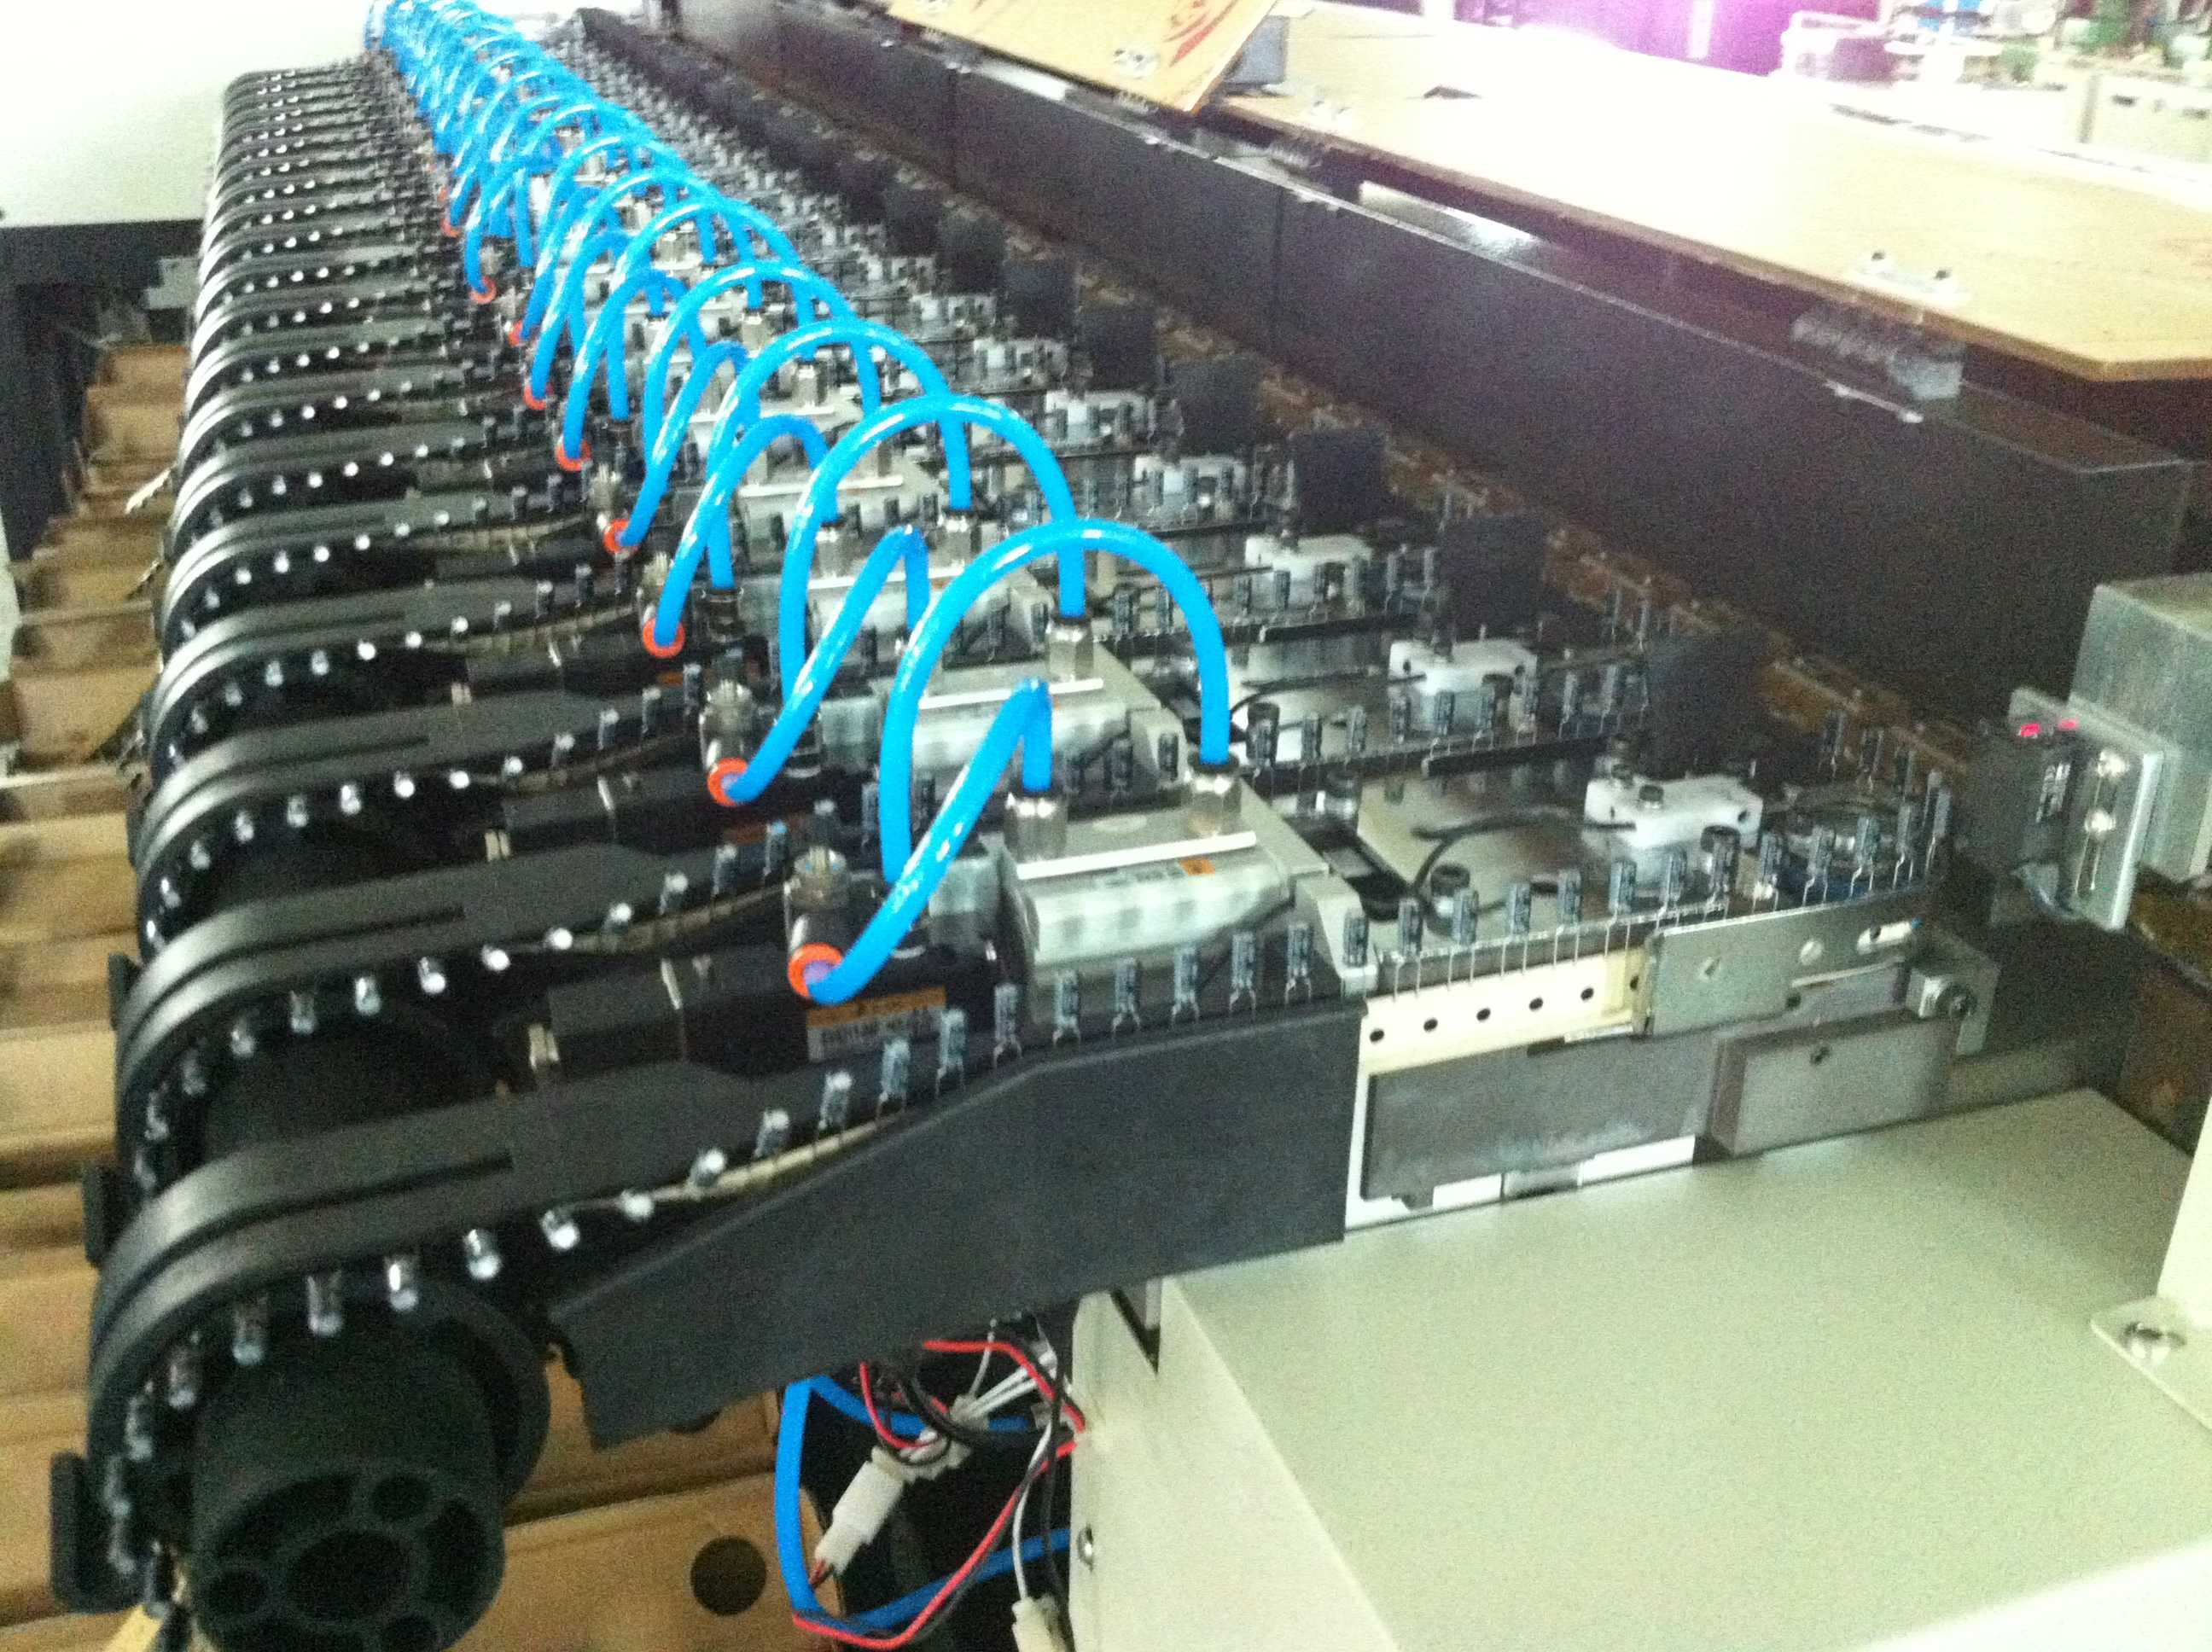 DIP, PCB Assembly,Chip Mounter, Pick and Place, IC Mounter, High Speed Mounter, Wave soldering,LED lighting, LED Lamp, LED Display, LED tube,UPS, Power Converter, Power Adepter, Mobile Charger, PCB board handling system, Loader, Unloader, Conveyor,Shuttle, Chip Mounter, Pick and Place, IC Mounter, High Speed Mounter Induction Cooker, AC, Electric Cooker, Fan, TV, Settle Box